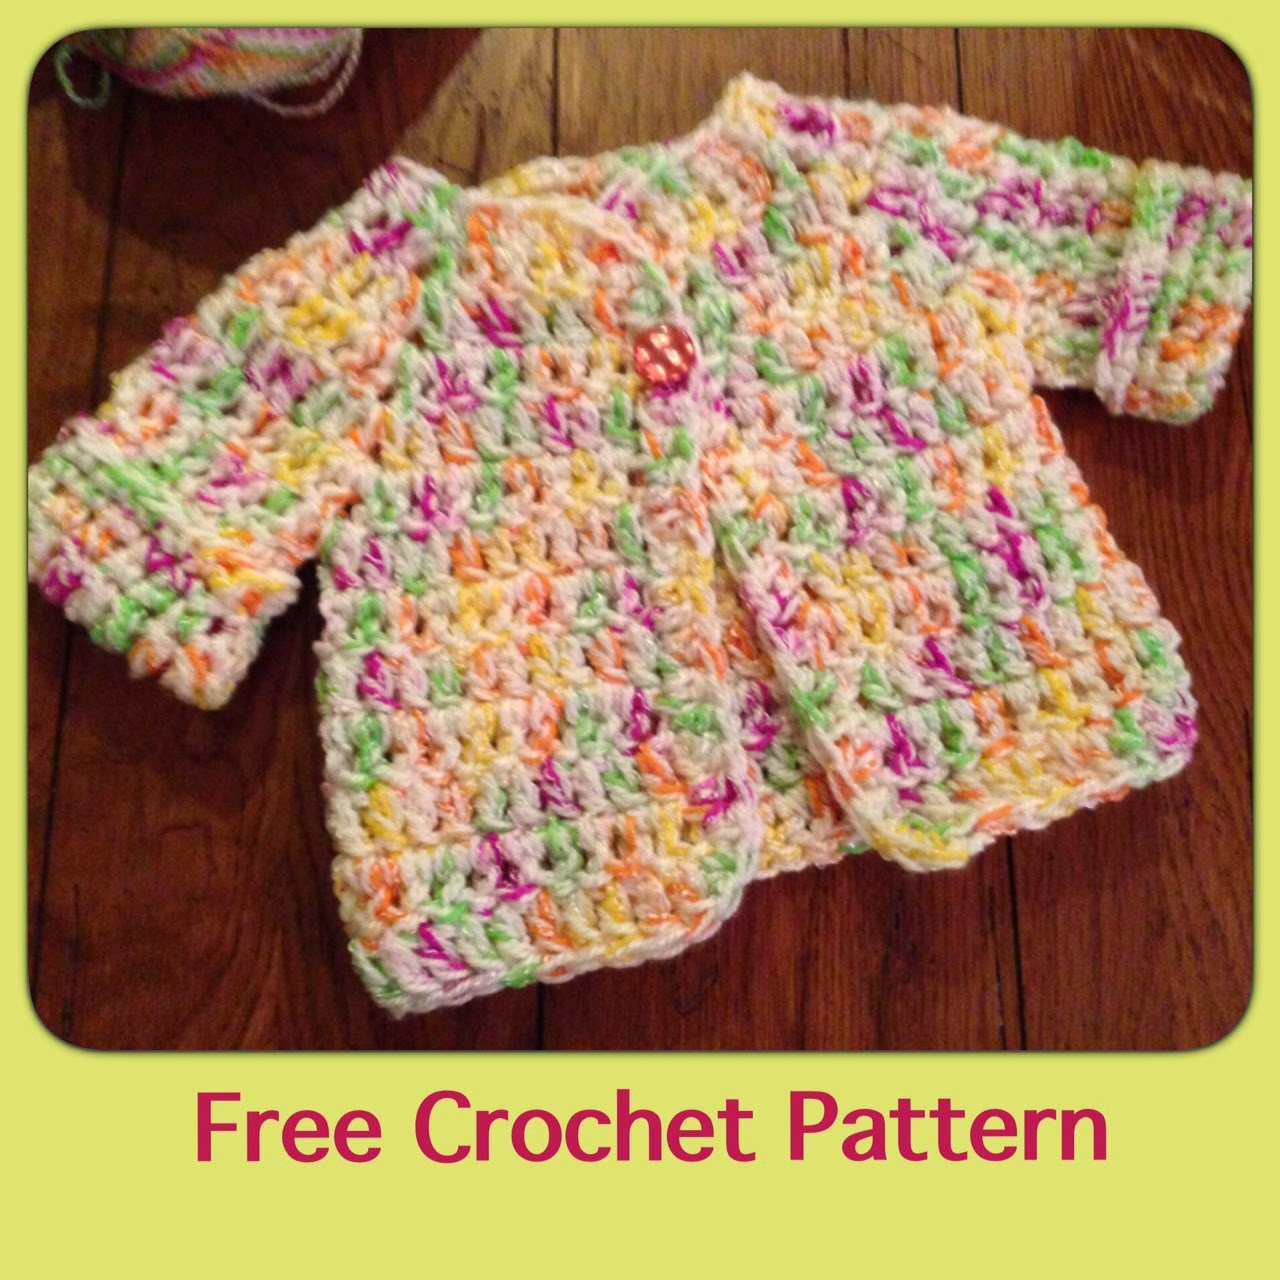 Free Crochet Pattern For Easy Baby Sweater : Craft Brag: Free Crochet Baby Sweater Pattern